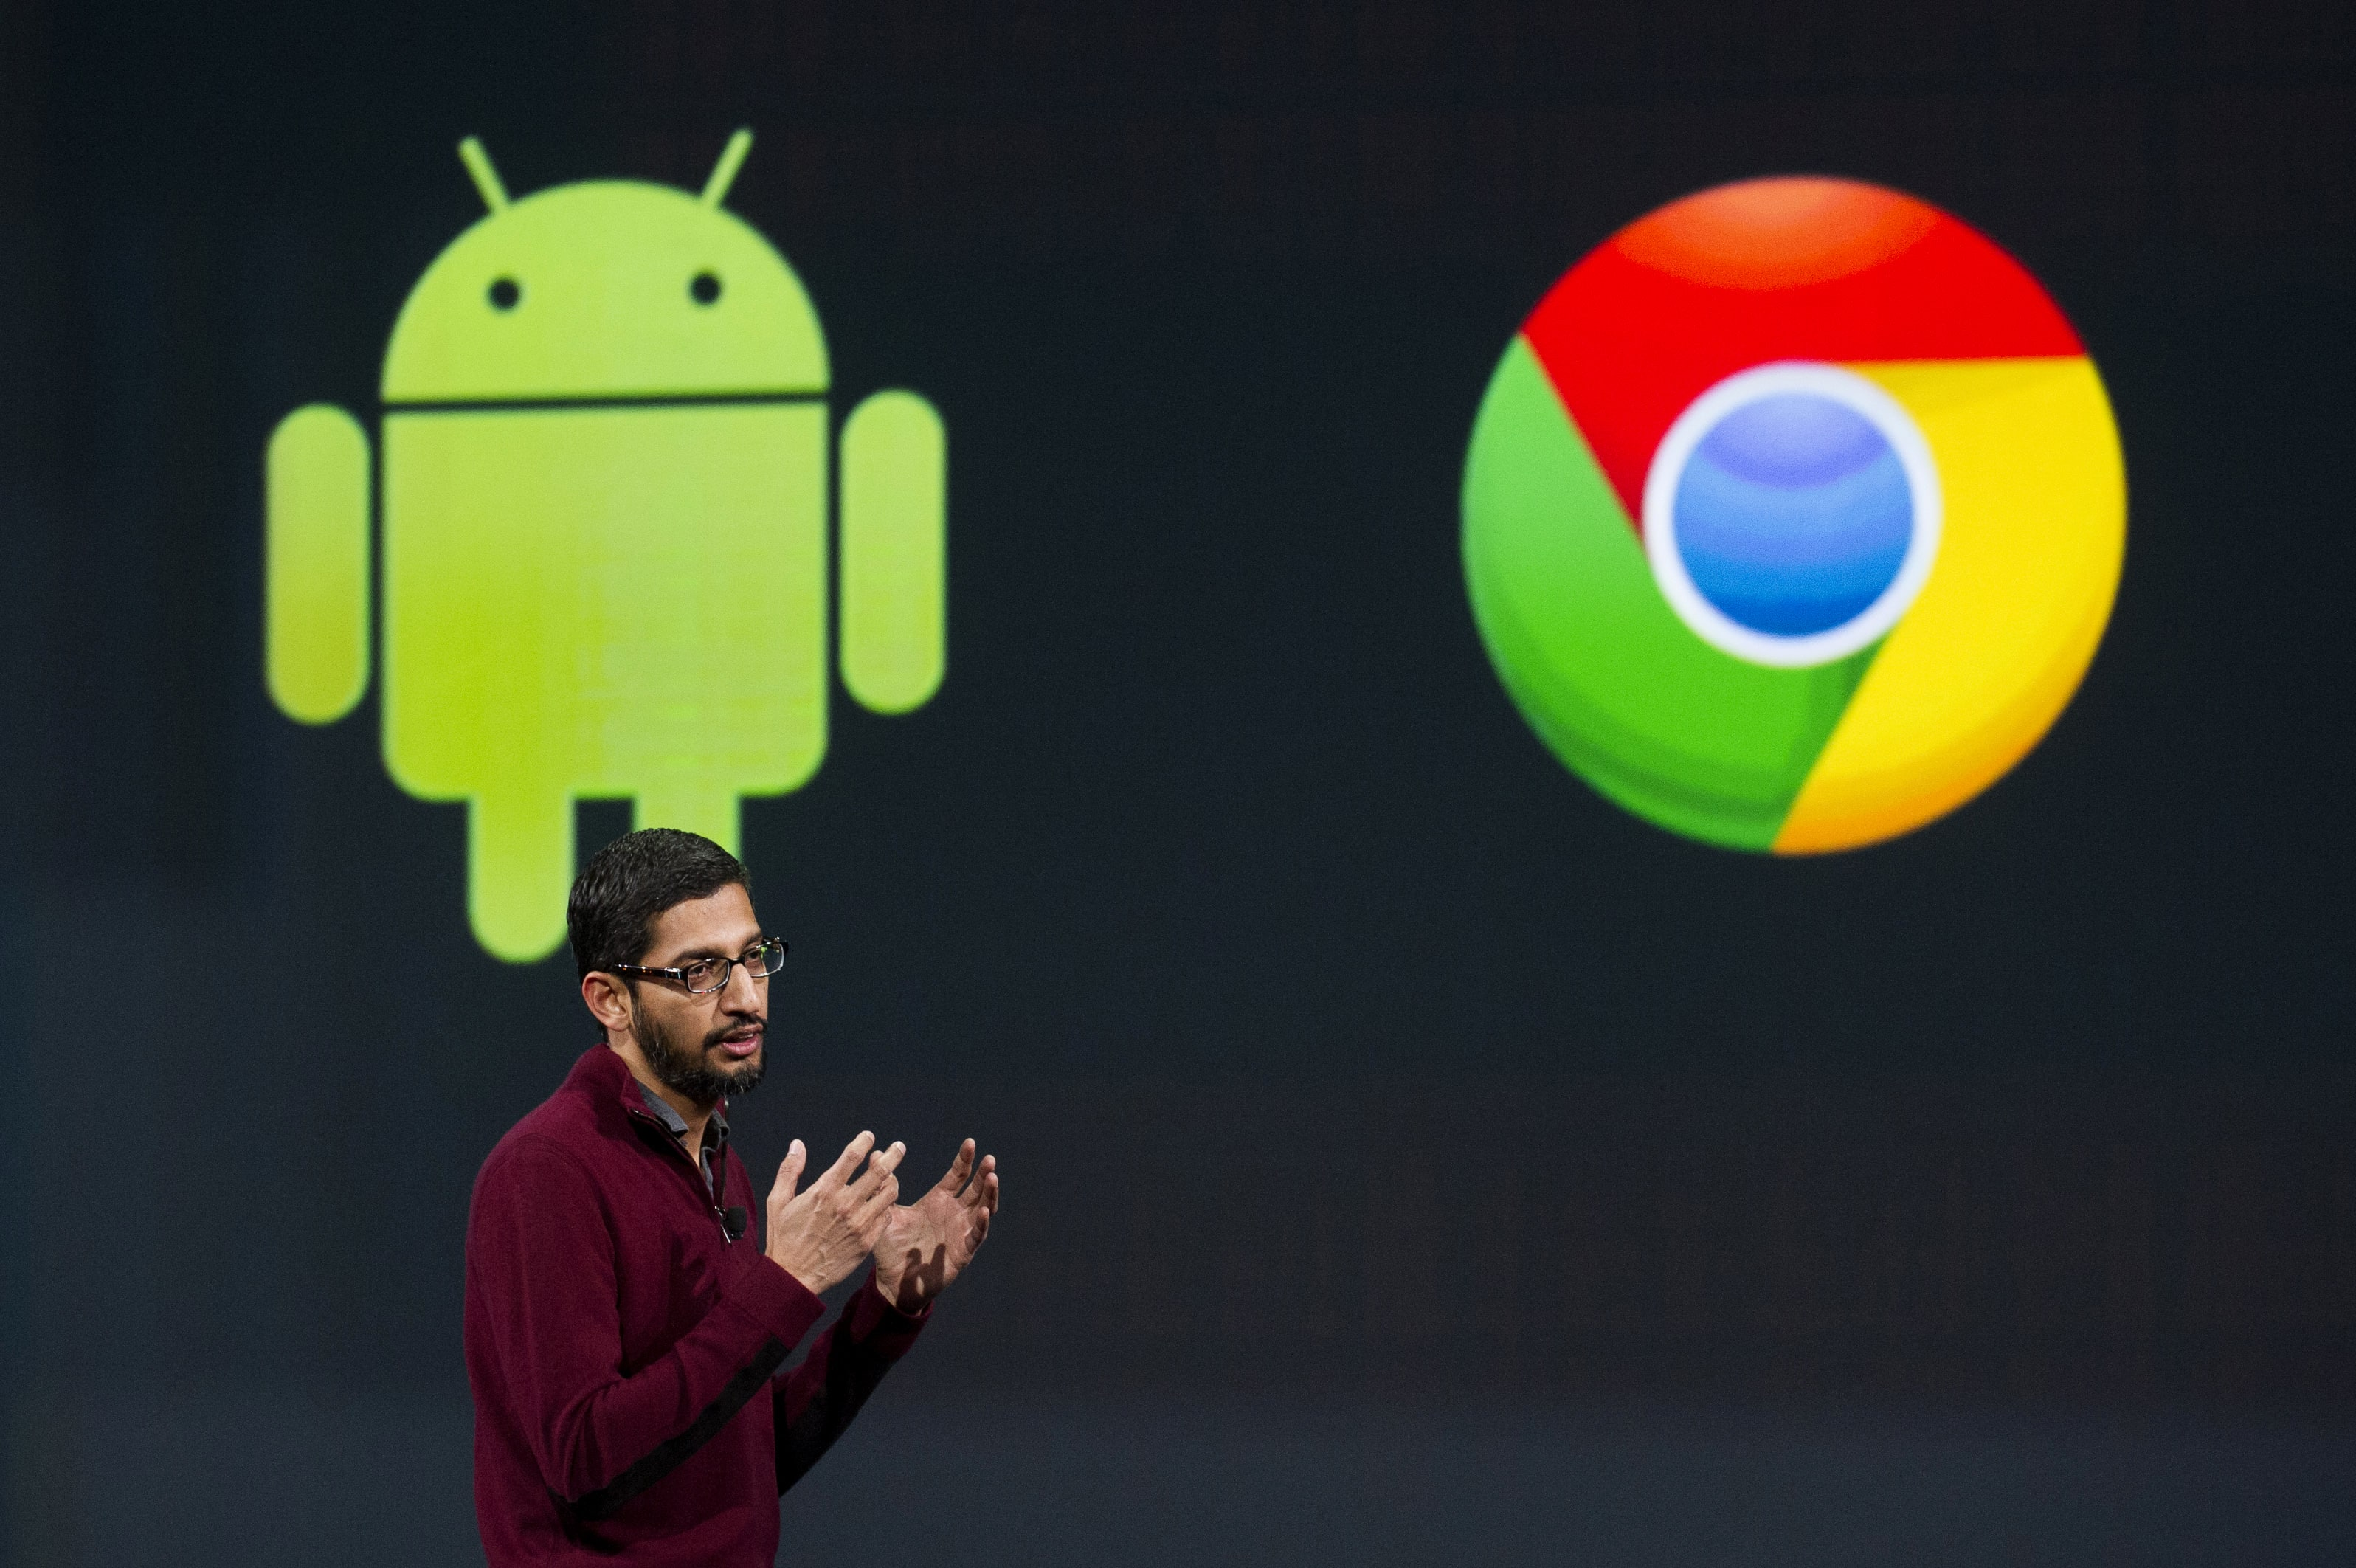 Google not playing fair after EU's Android antitrust fine, rivals say